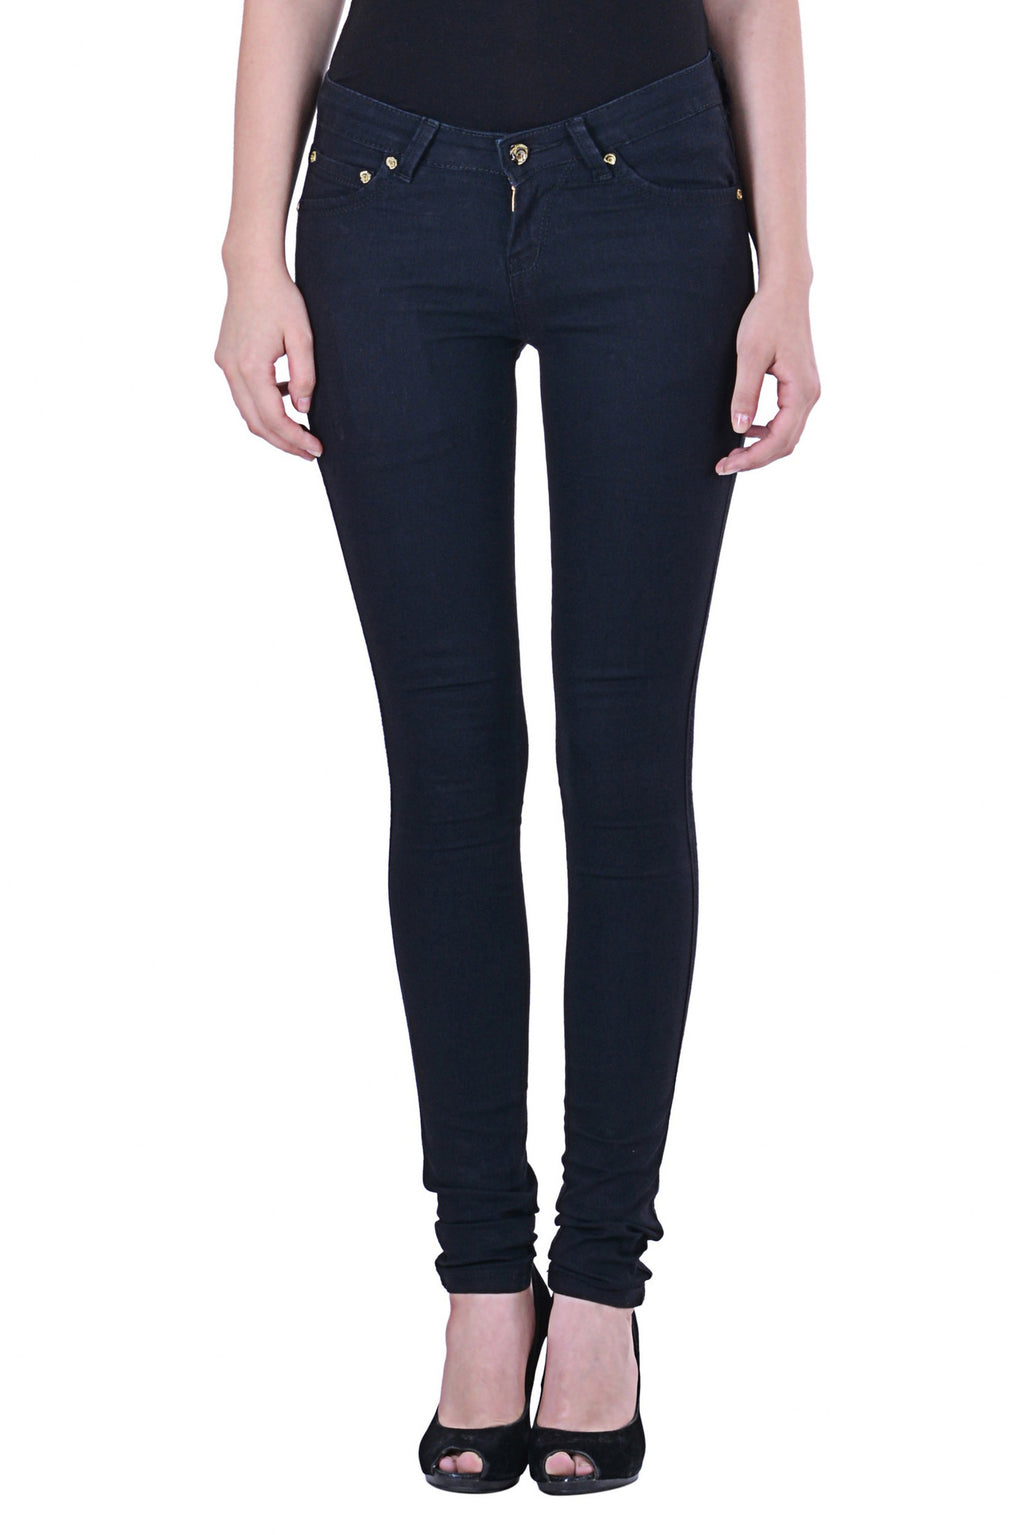 Black Basic Jeggings MSJG4903